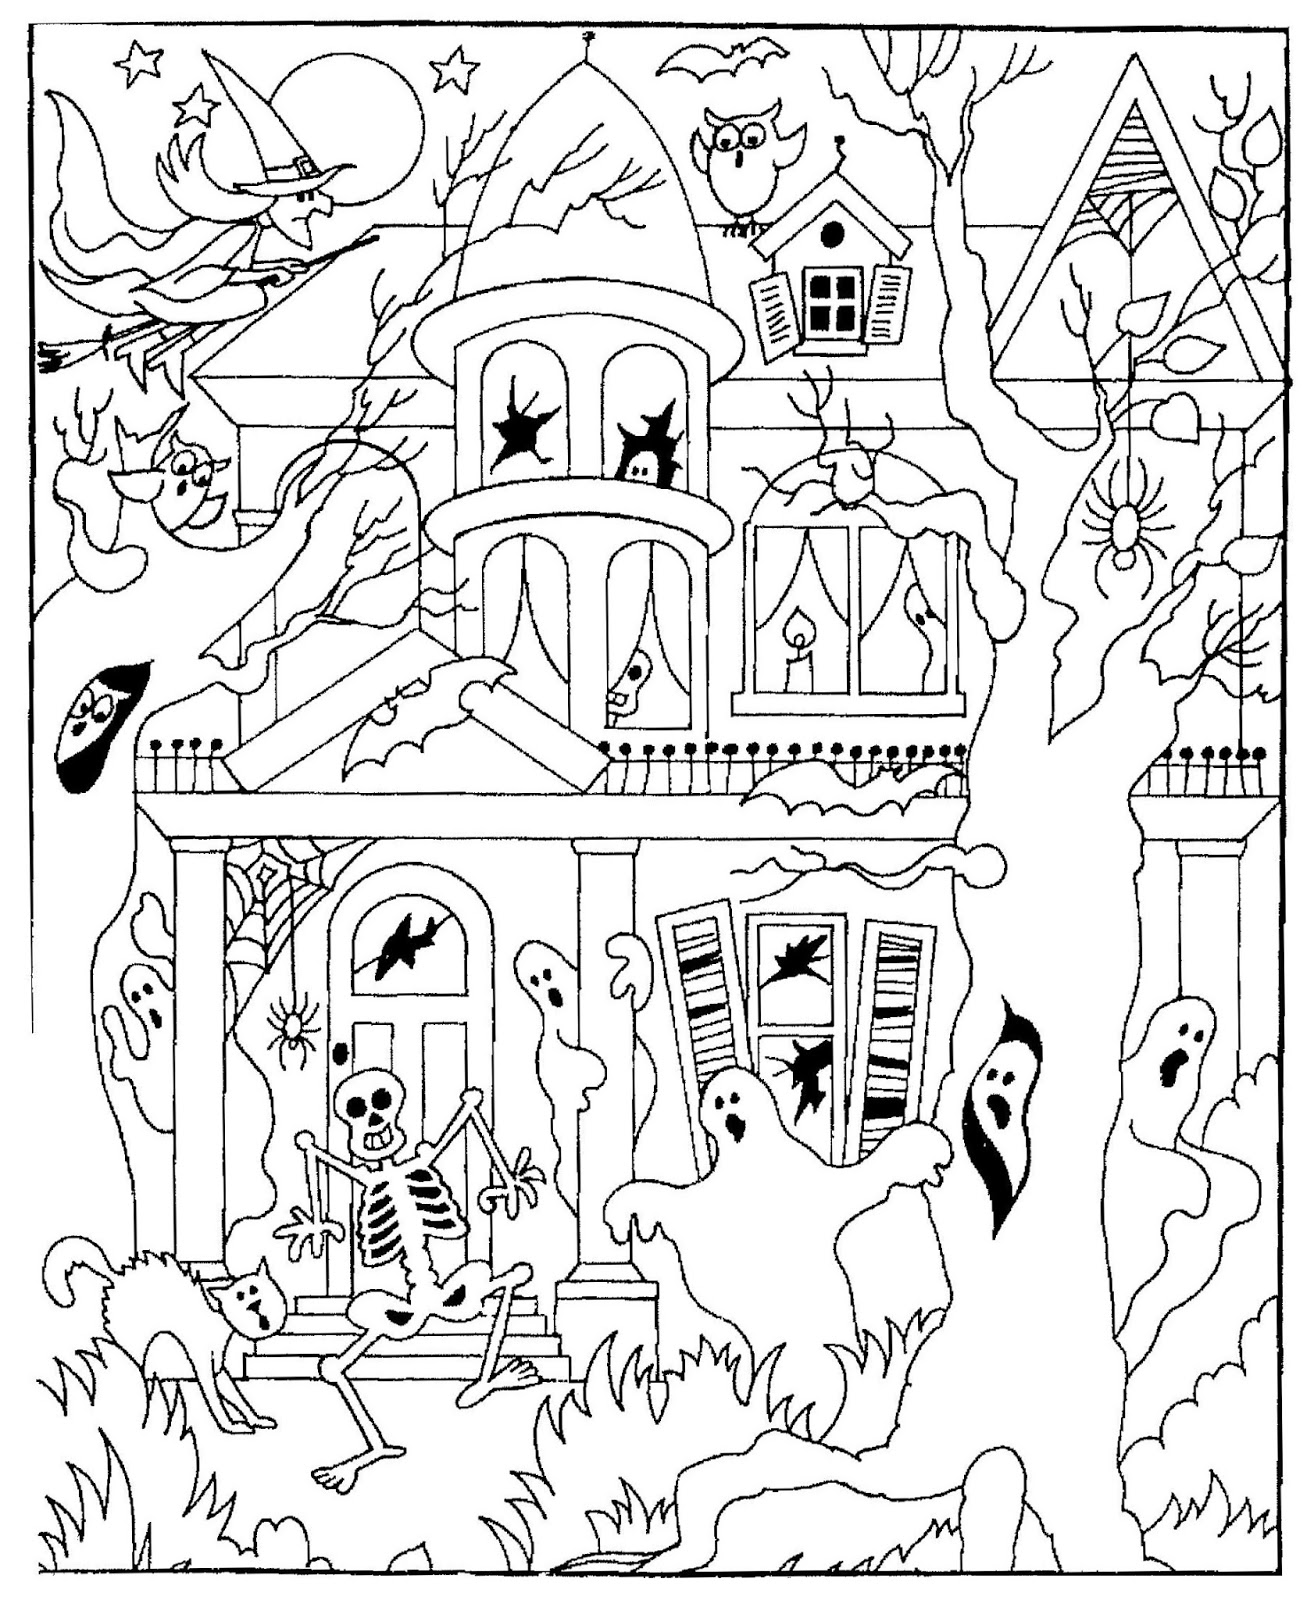 something to color for halloween - Halloween Coloring Contest 3